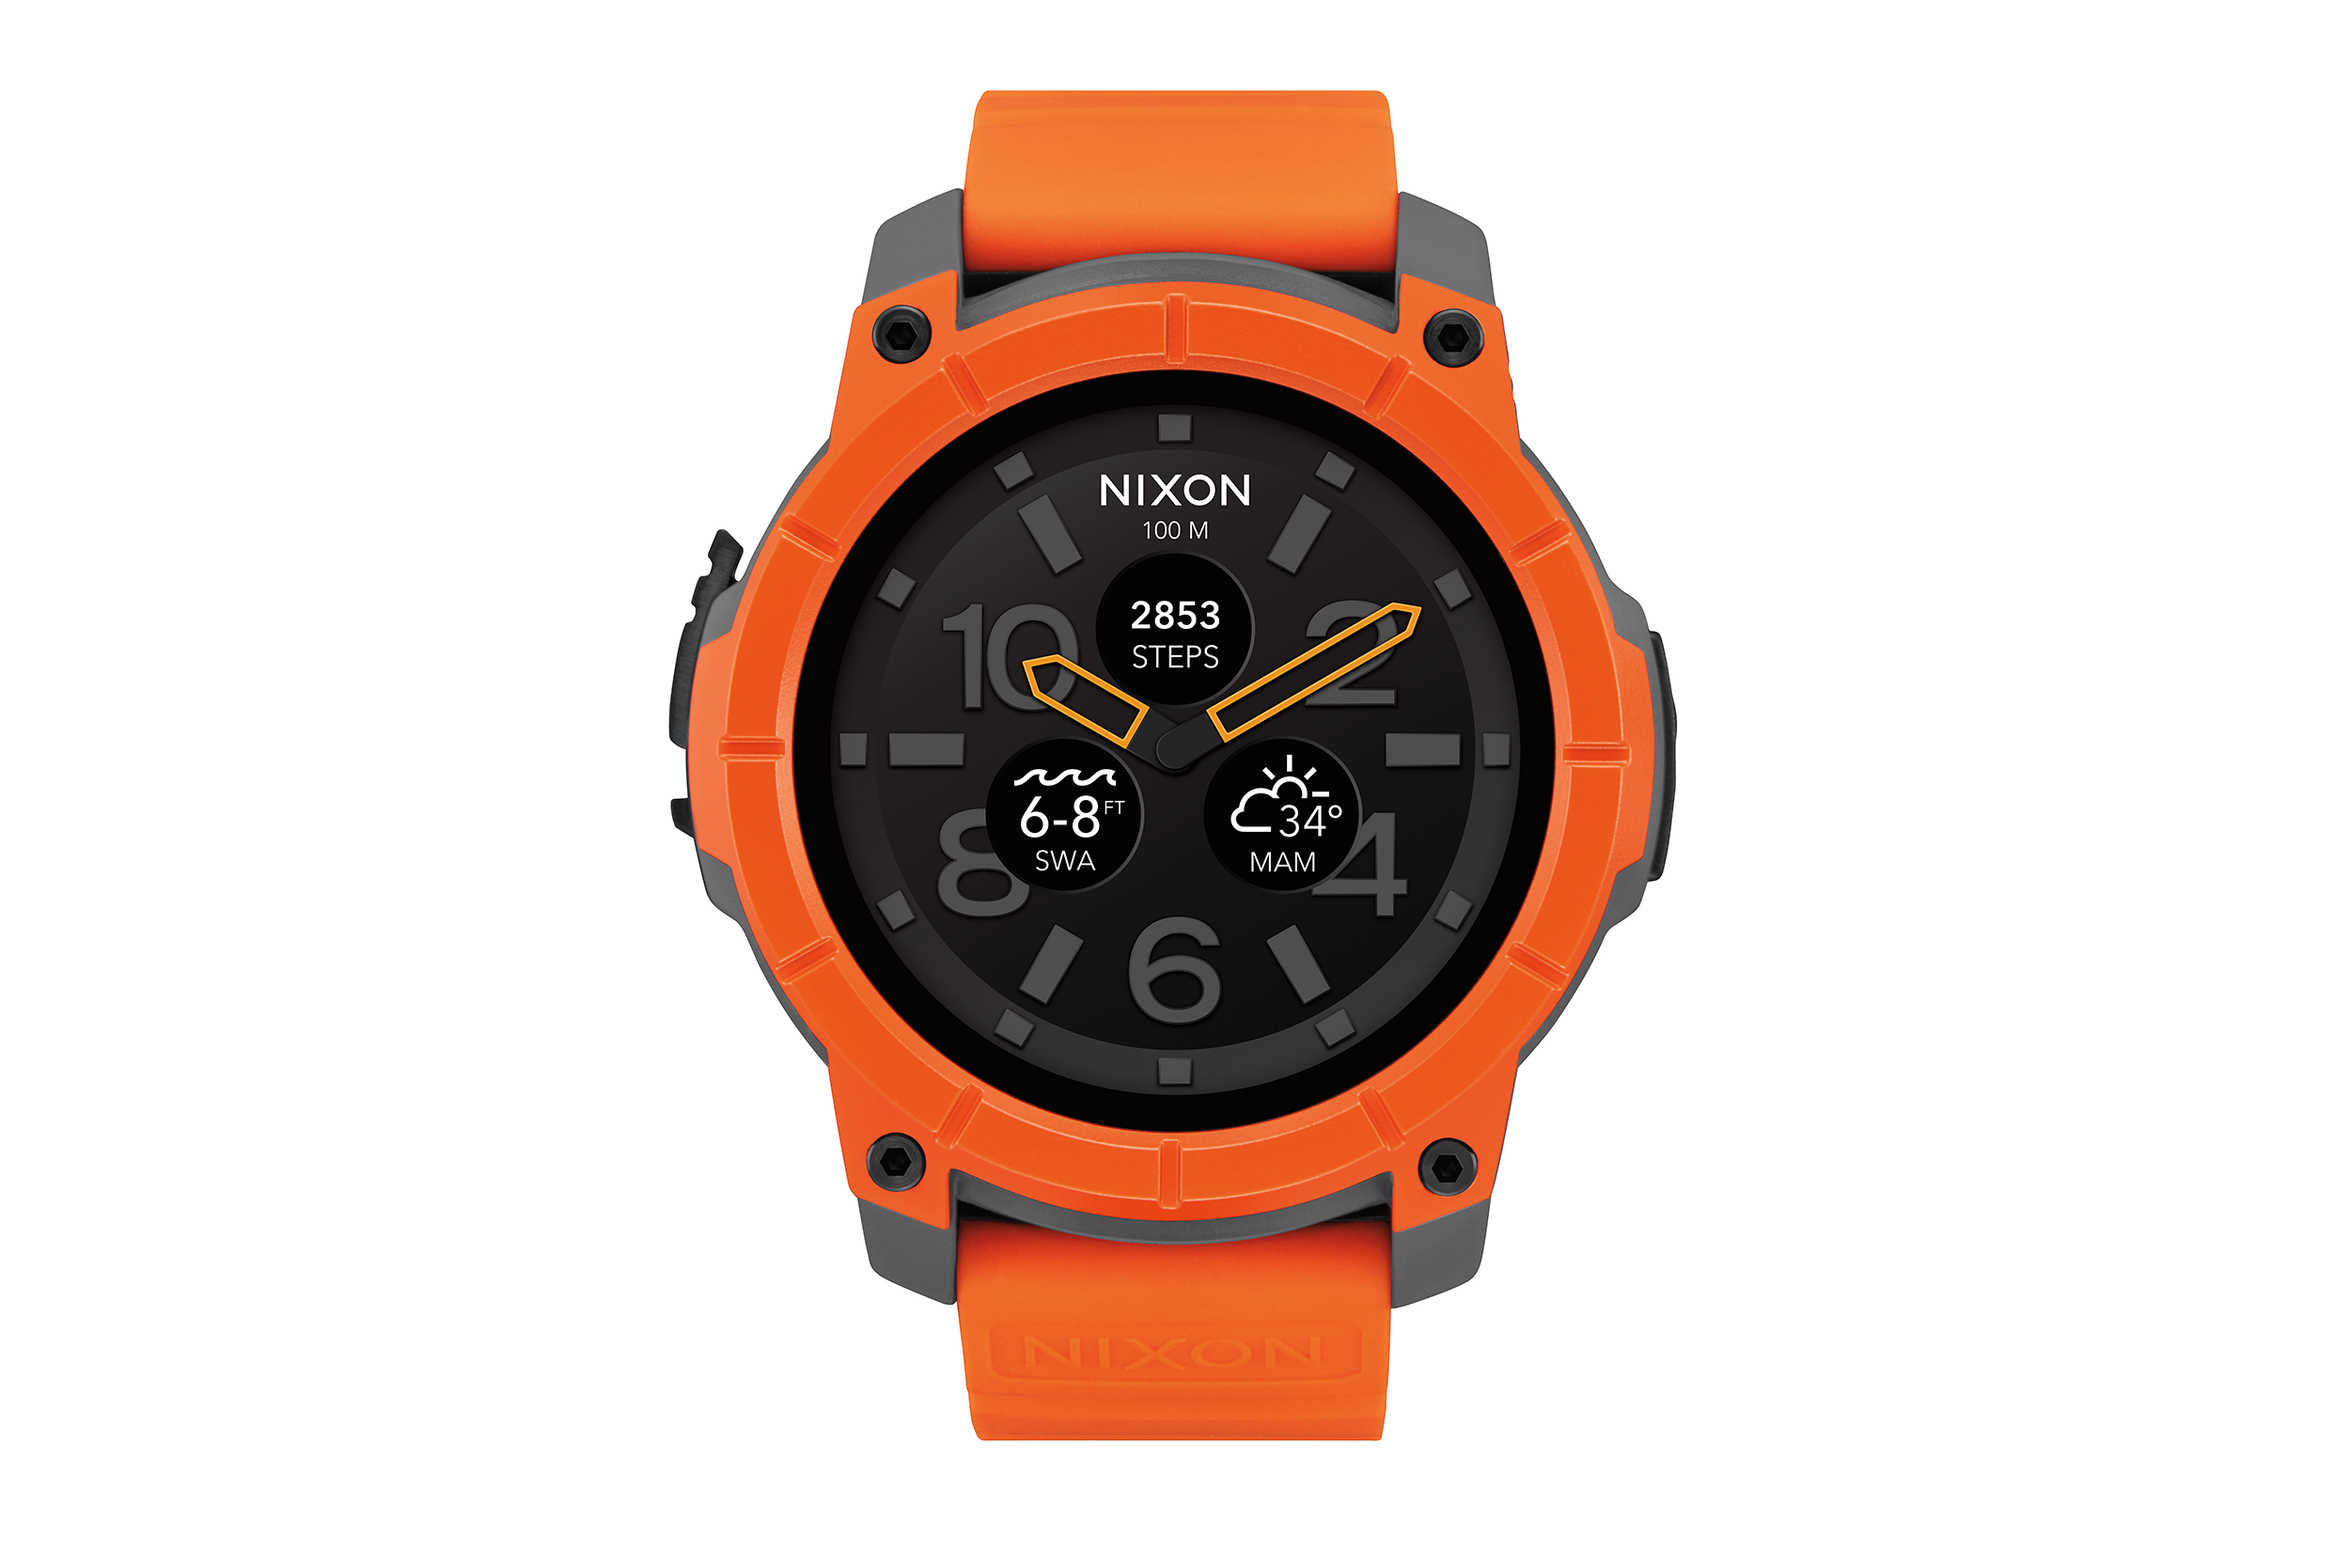 The new Nixon Mission is an Android Wear watch for surfers